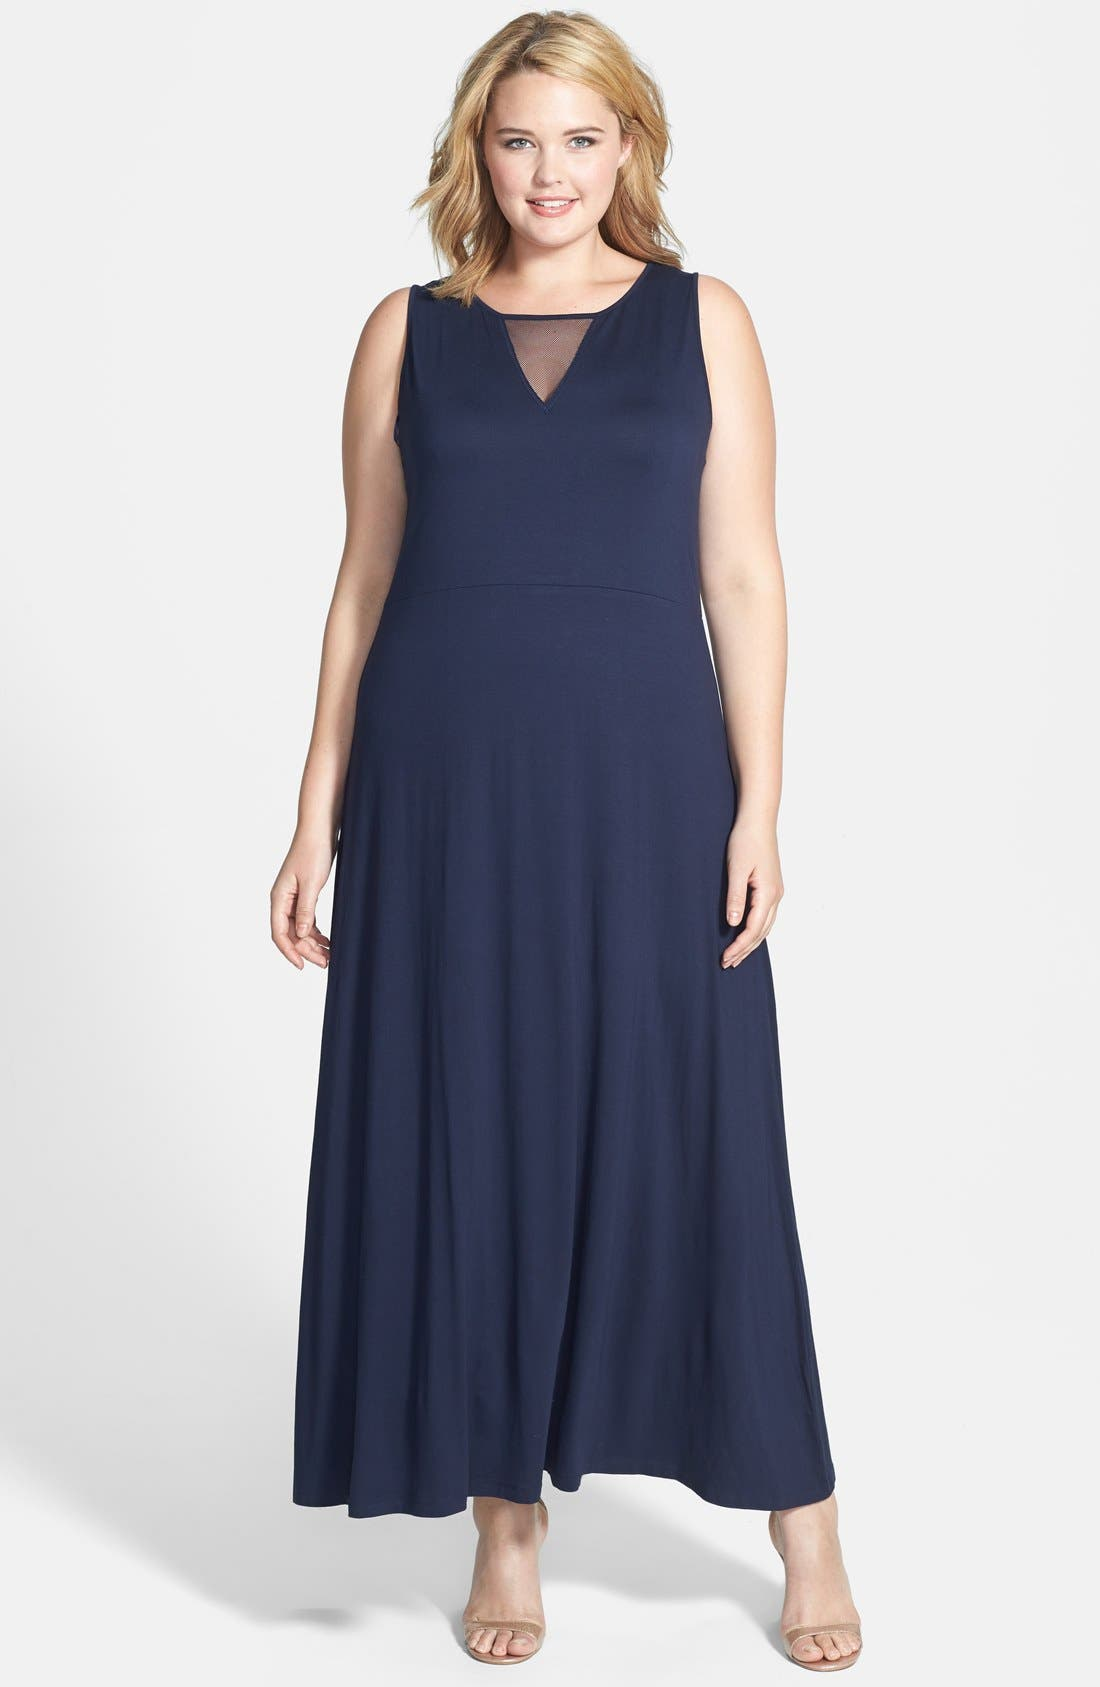 Alternate Image 1 Selected - Vince Camuto Mesh Inset Maxi Dress (Plus Size)